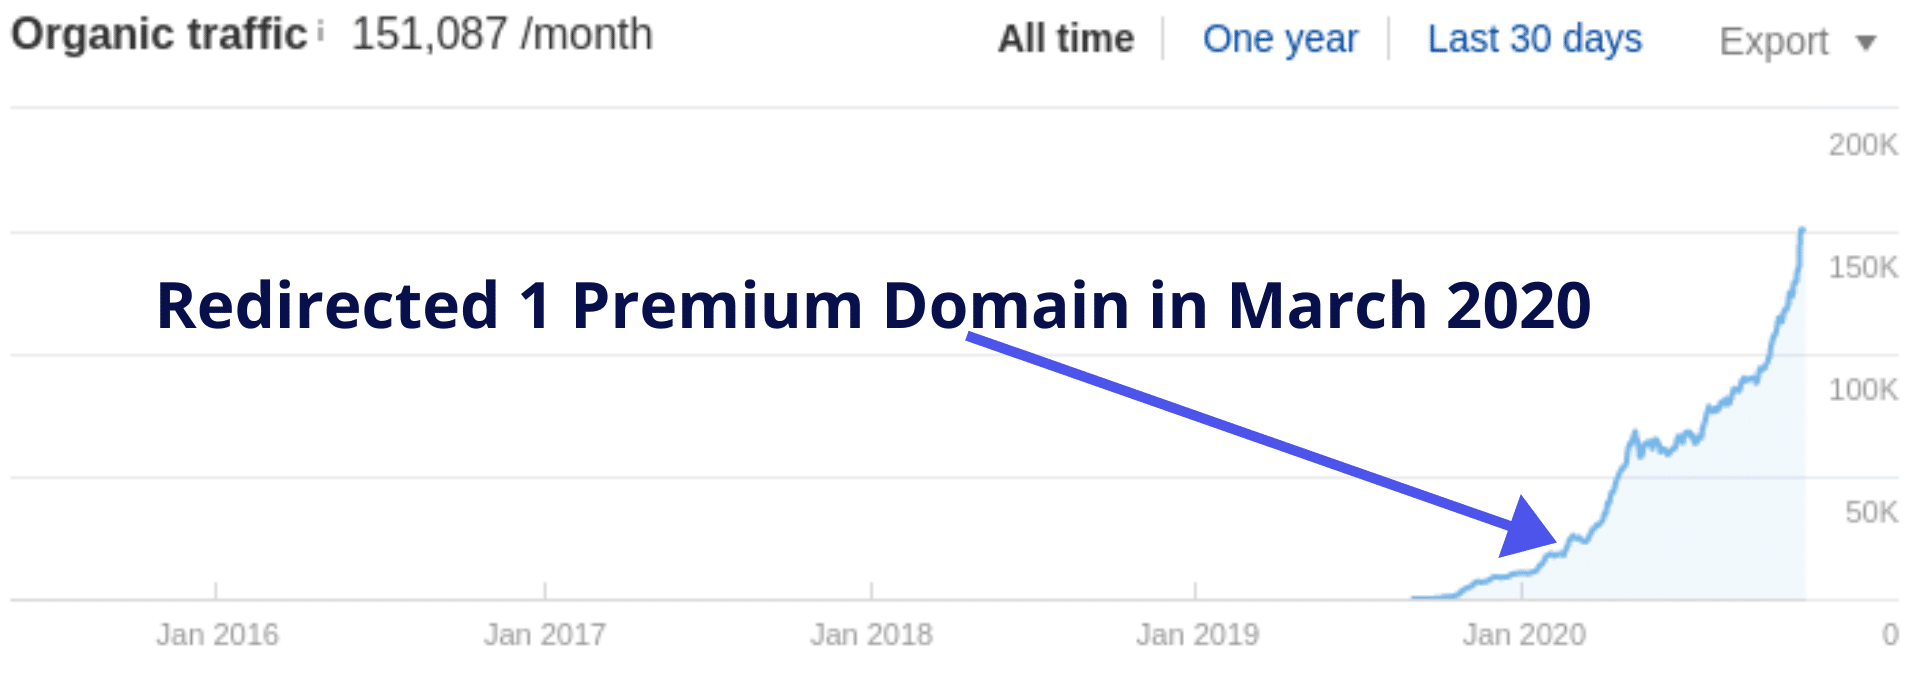 Customer redirected our premium domain to their money site's acqusition page, it took about 2 months for the effect to kick in.